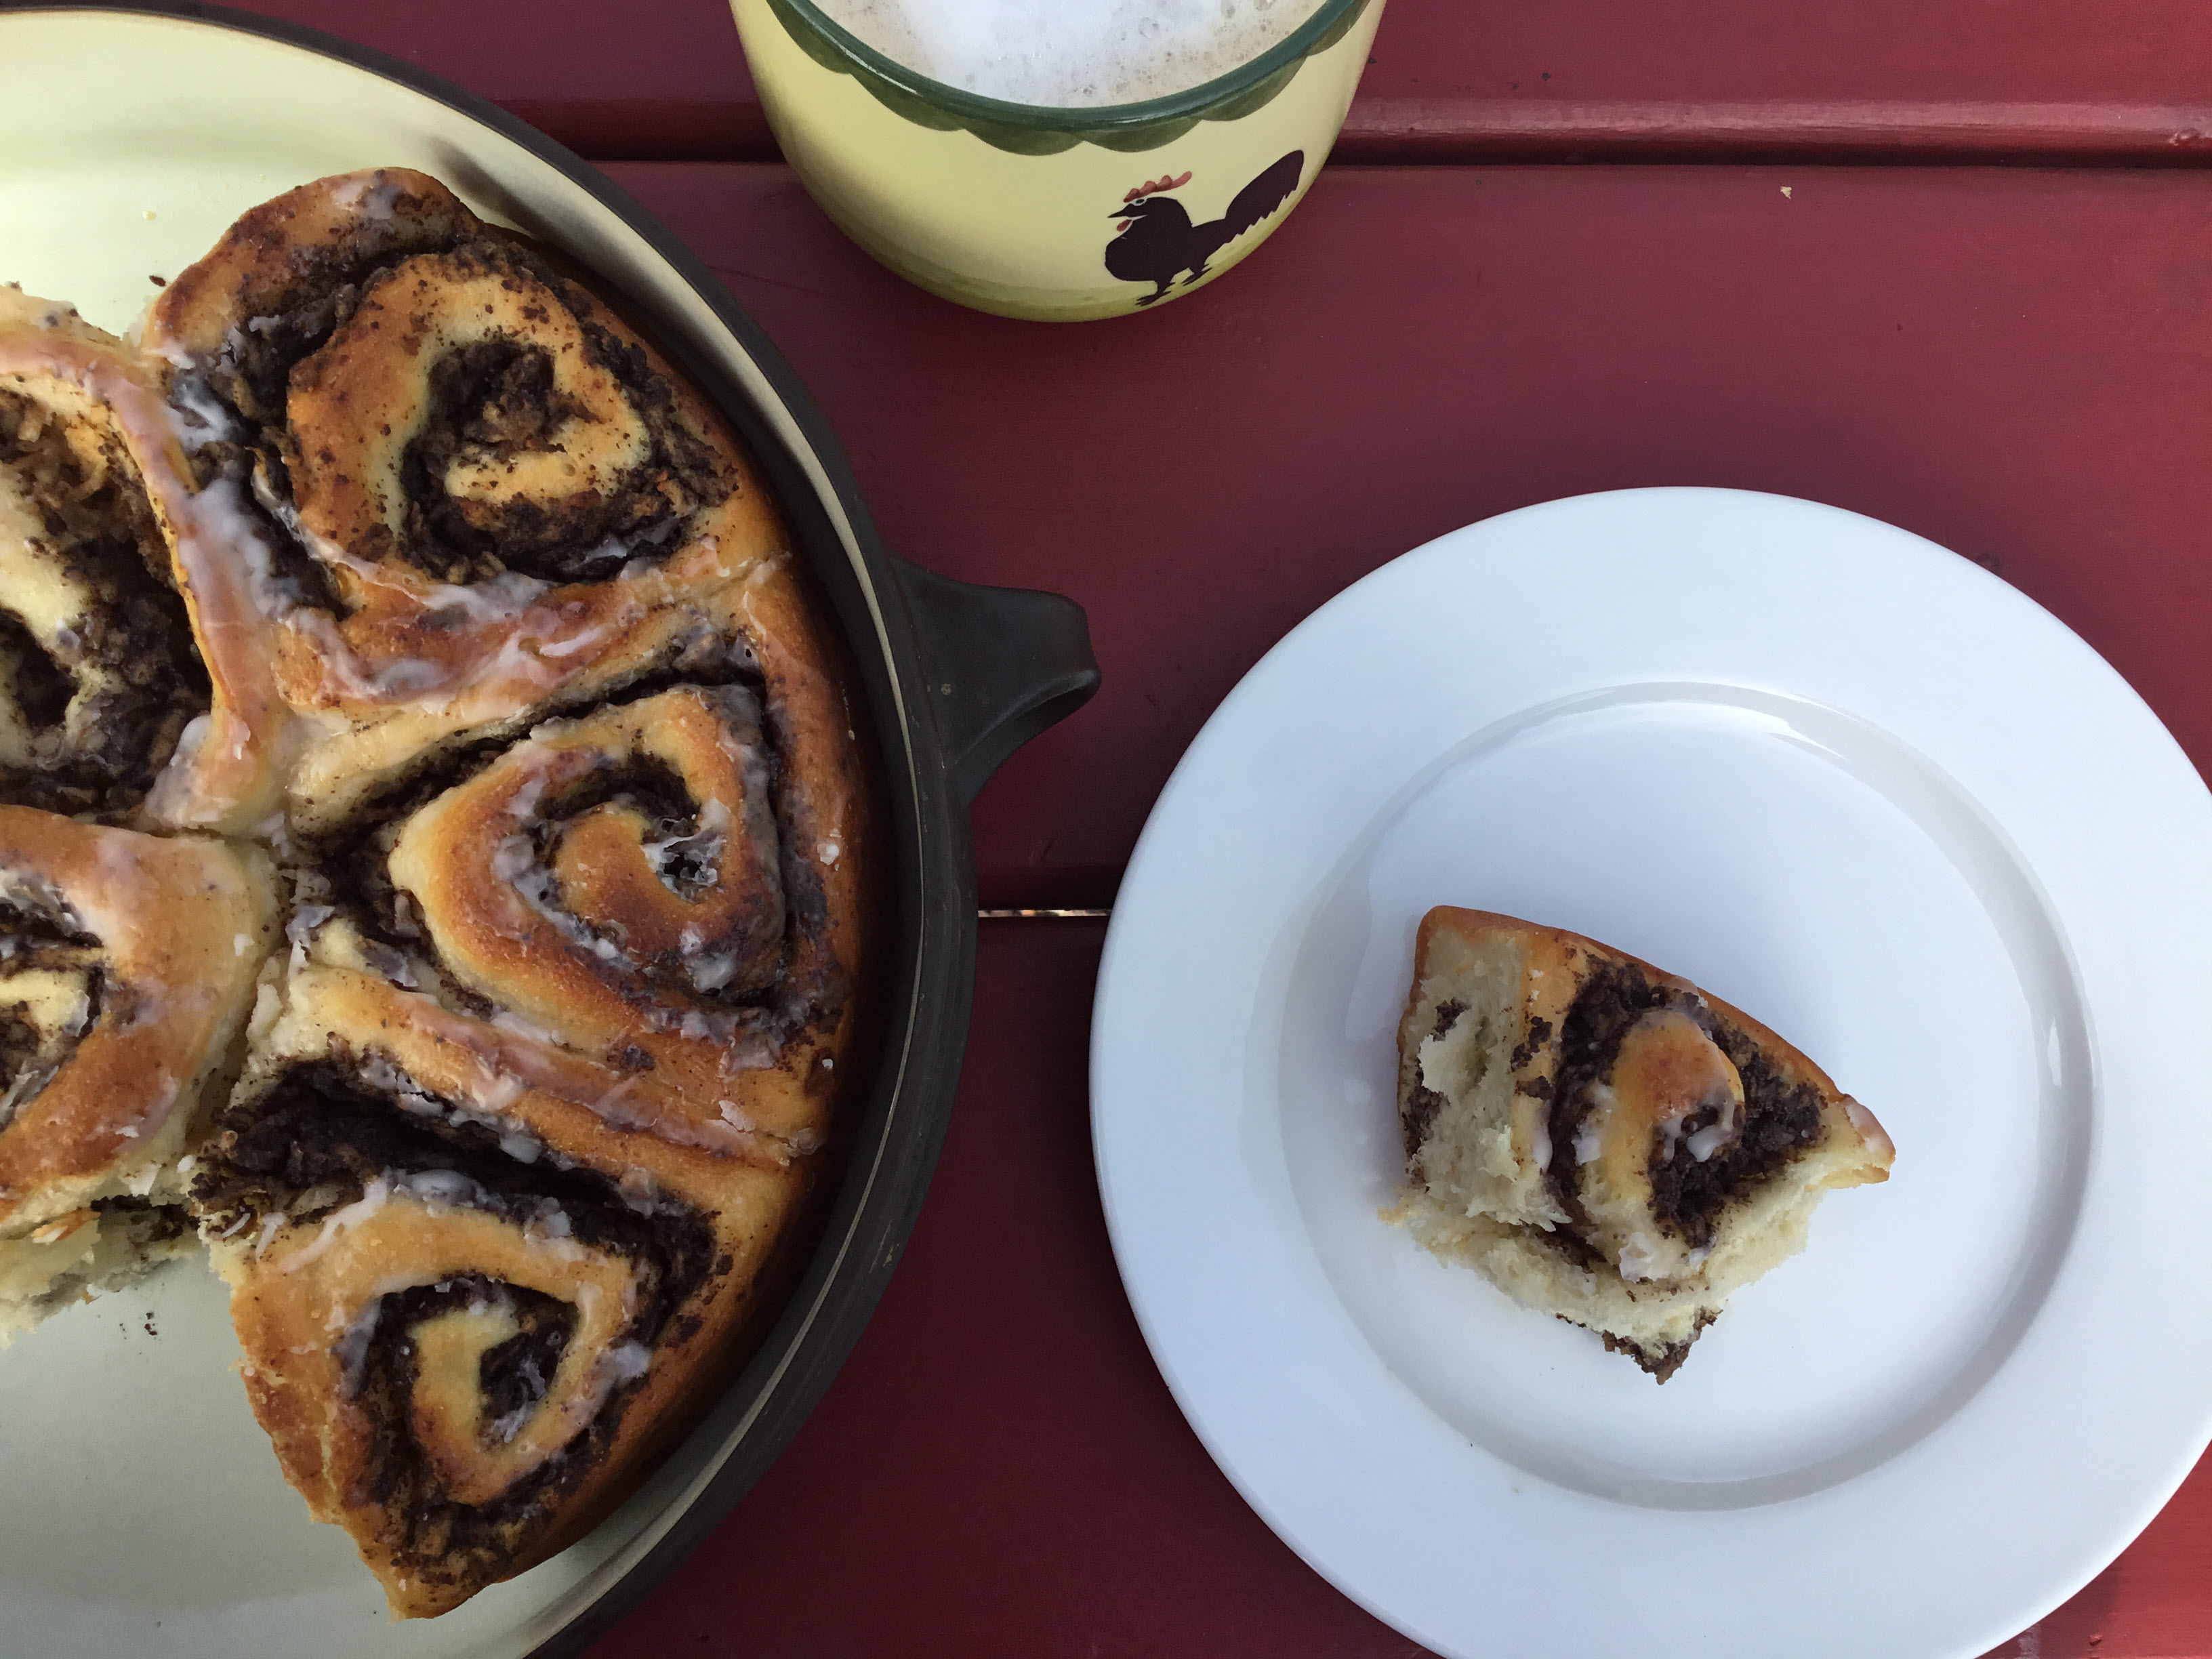 Yeasted Poppy Seed Apple Buns